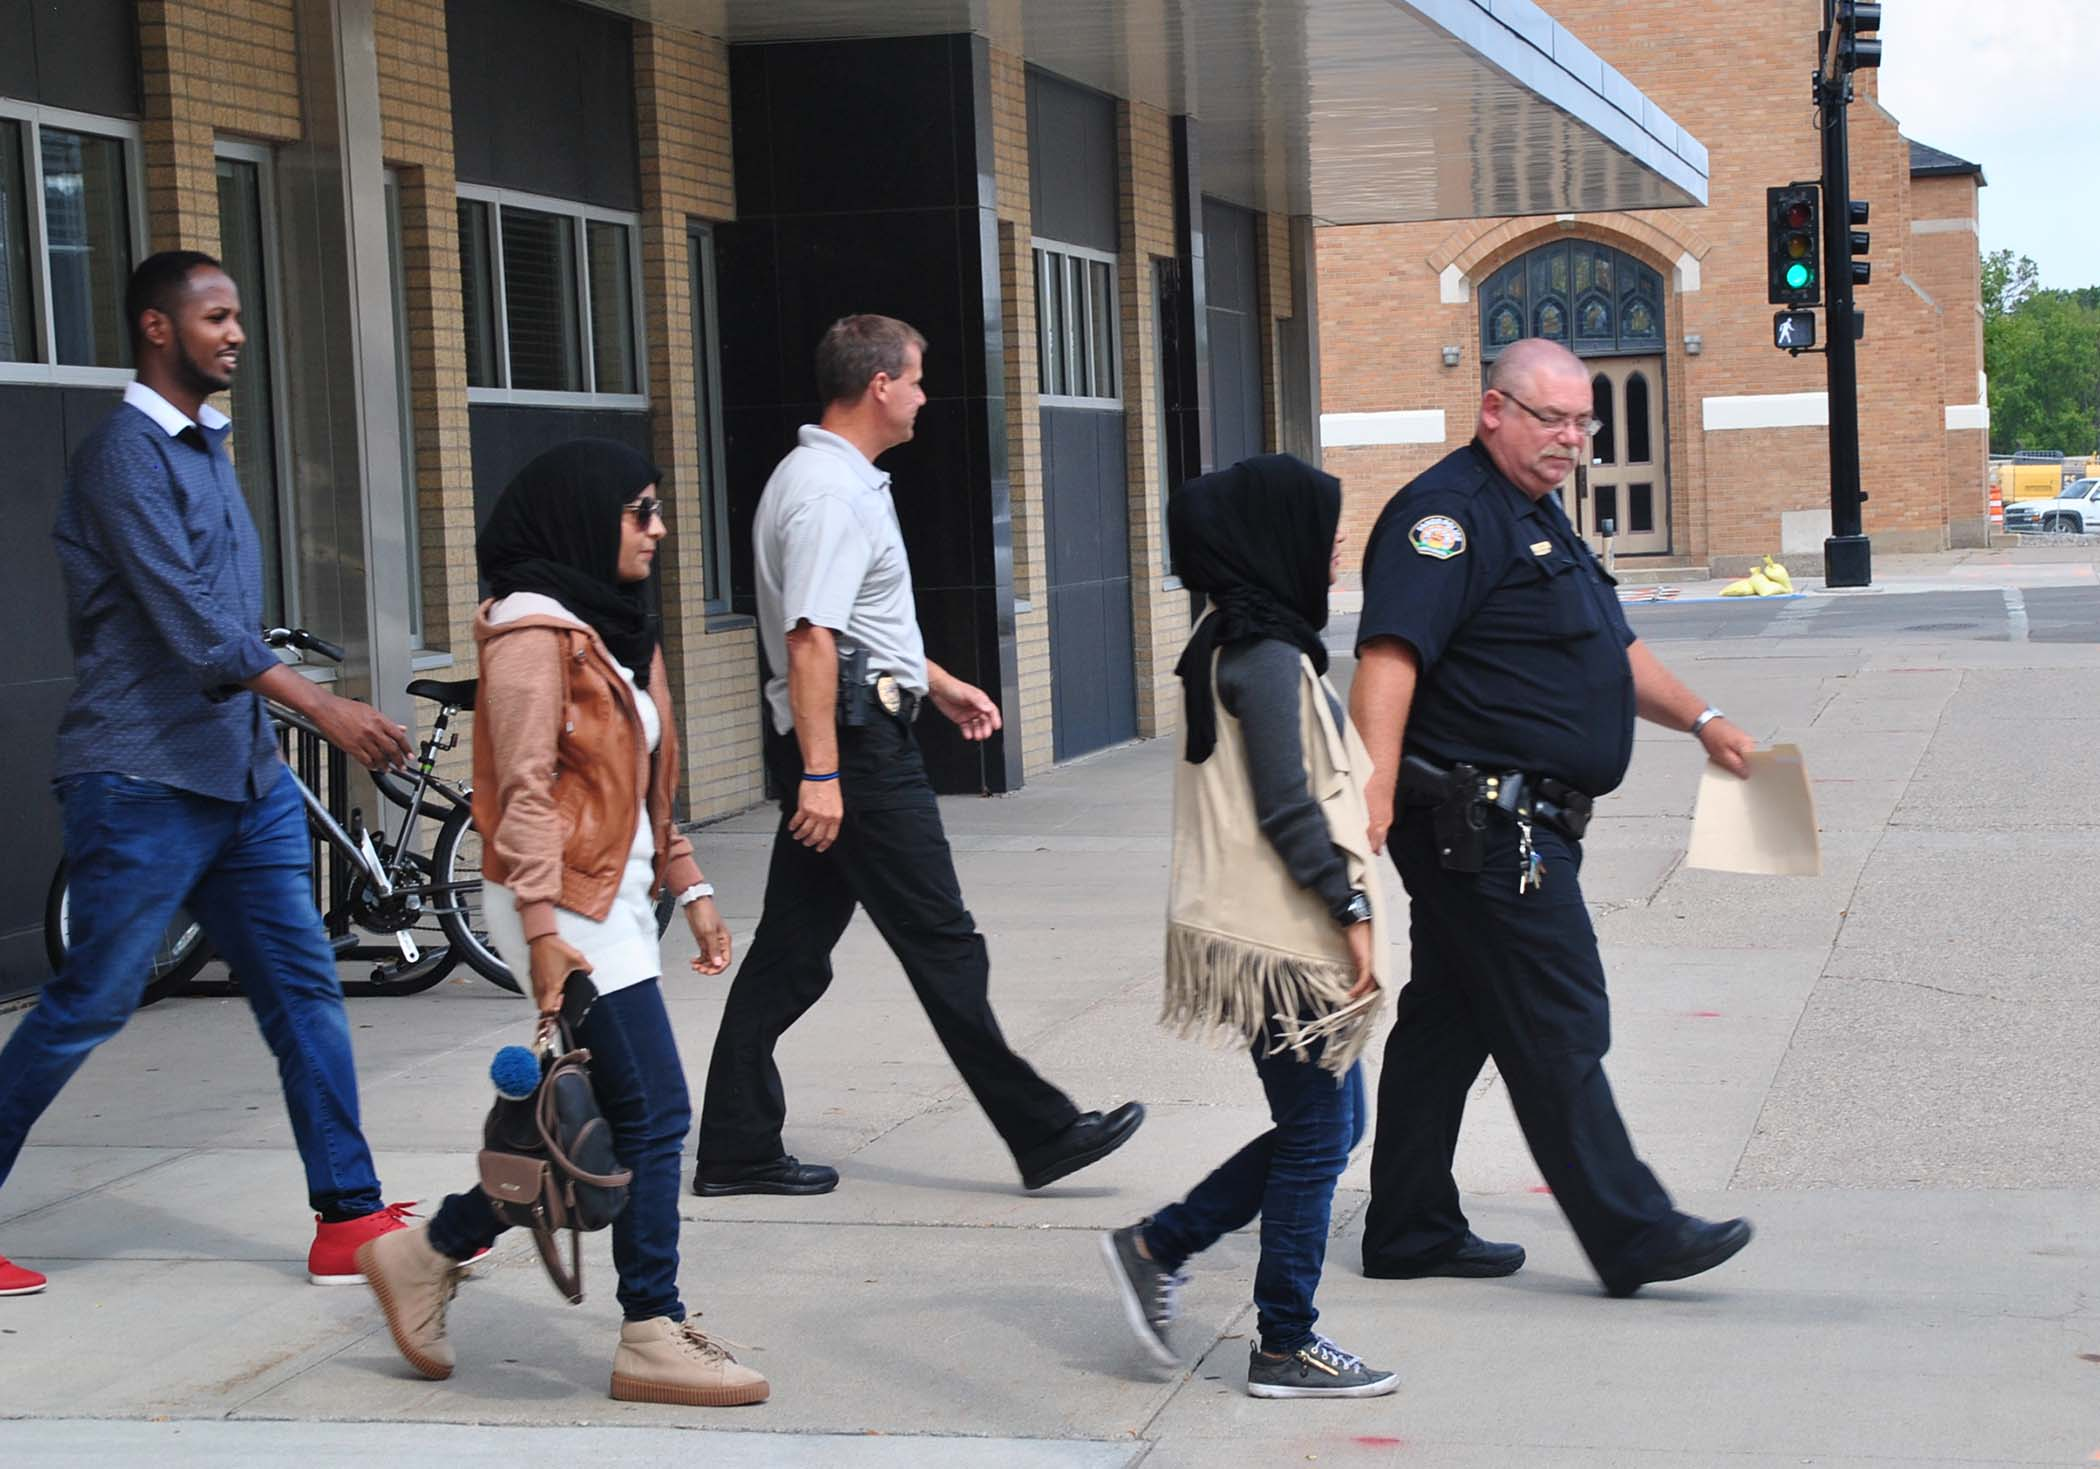 The Hassan sisters accompany police officers to a scheduled meeting with their attacker - photo by C.S. Hagen